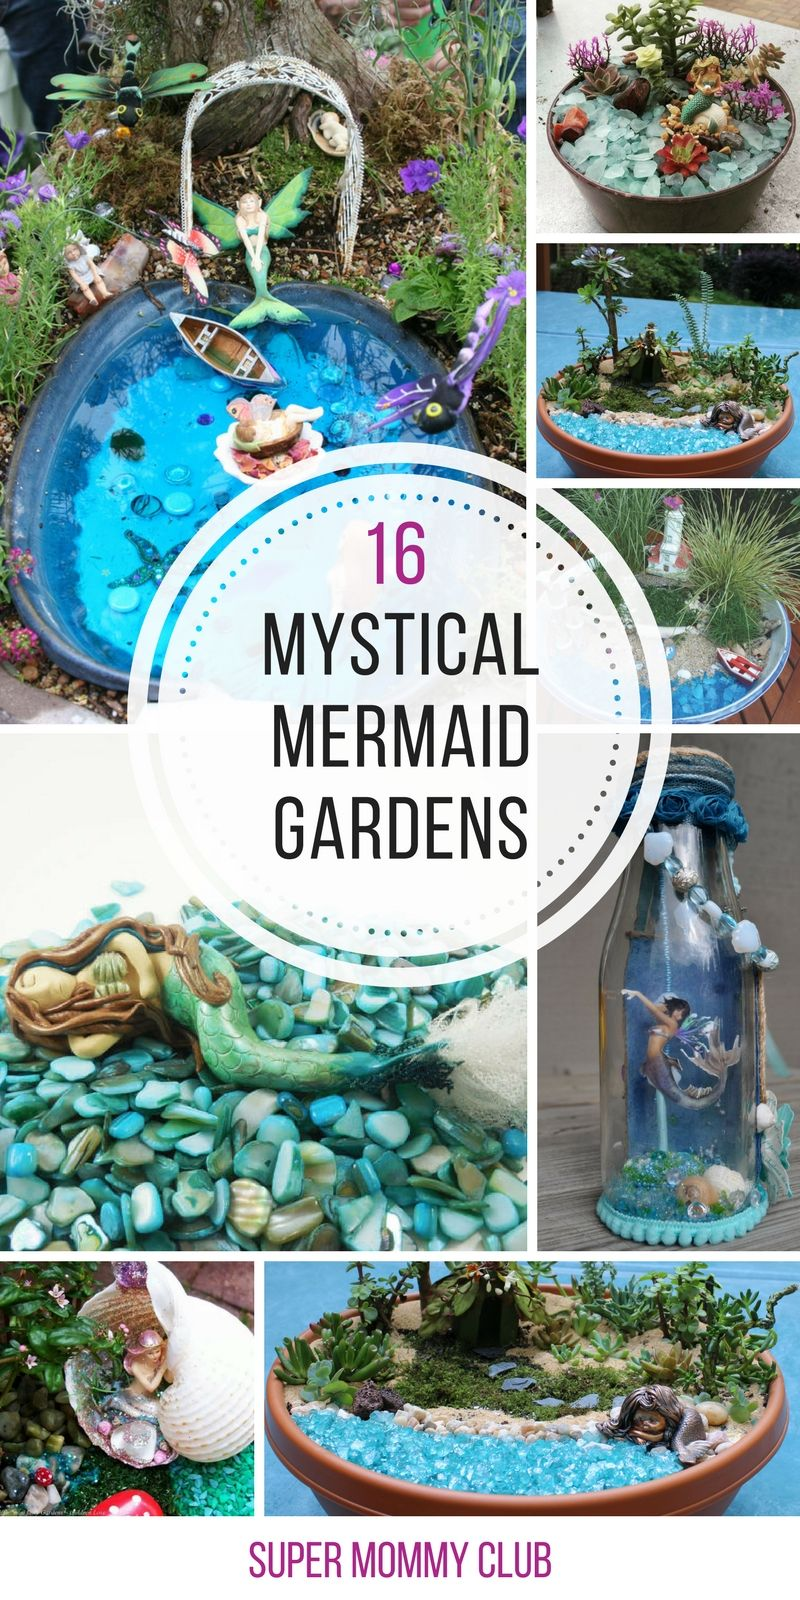 Loving these mermaid garden ideas – now we can make sea fairy gardens in our planters!